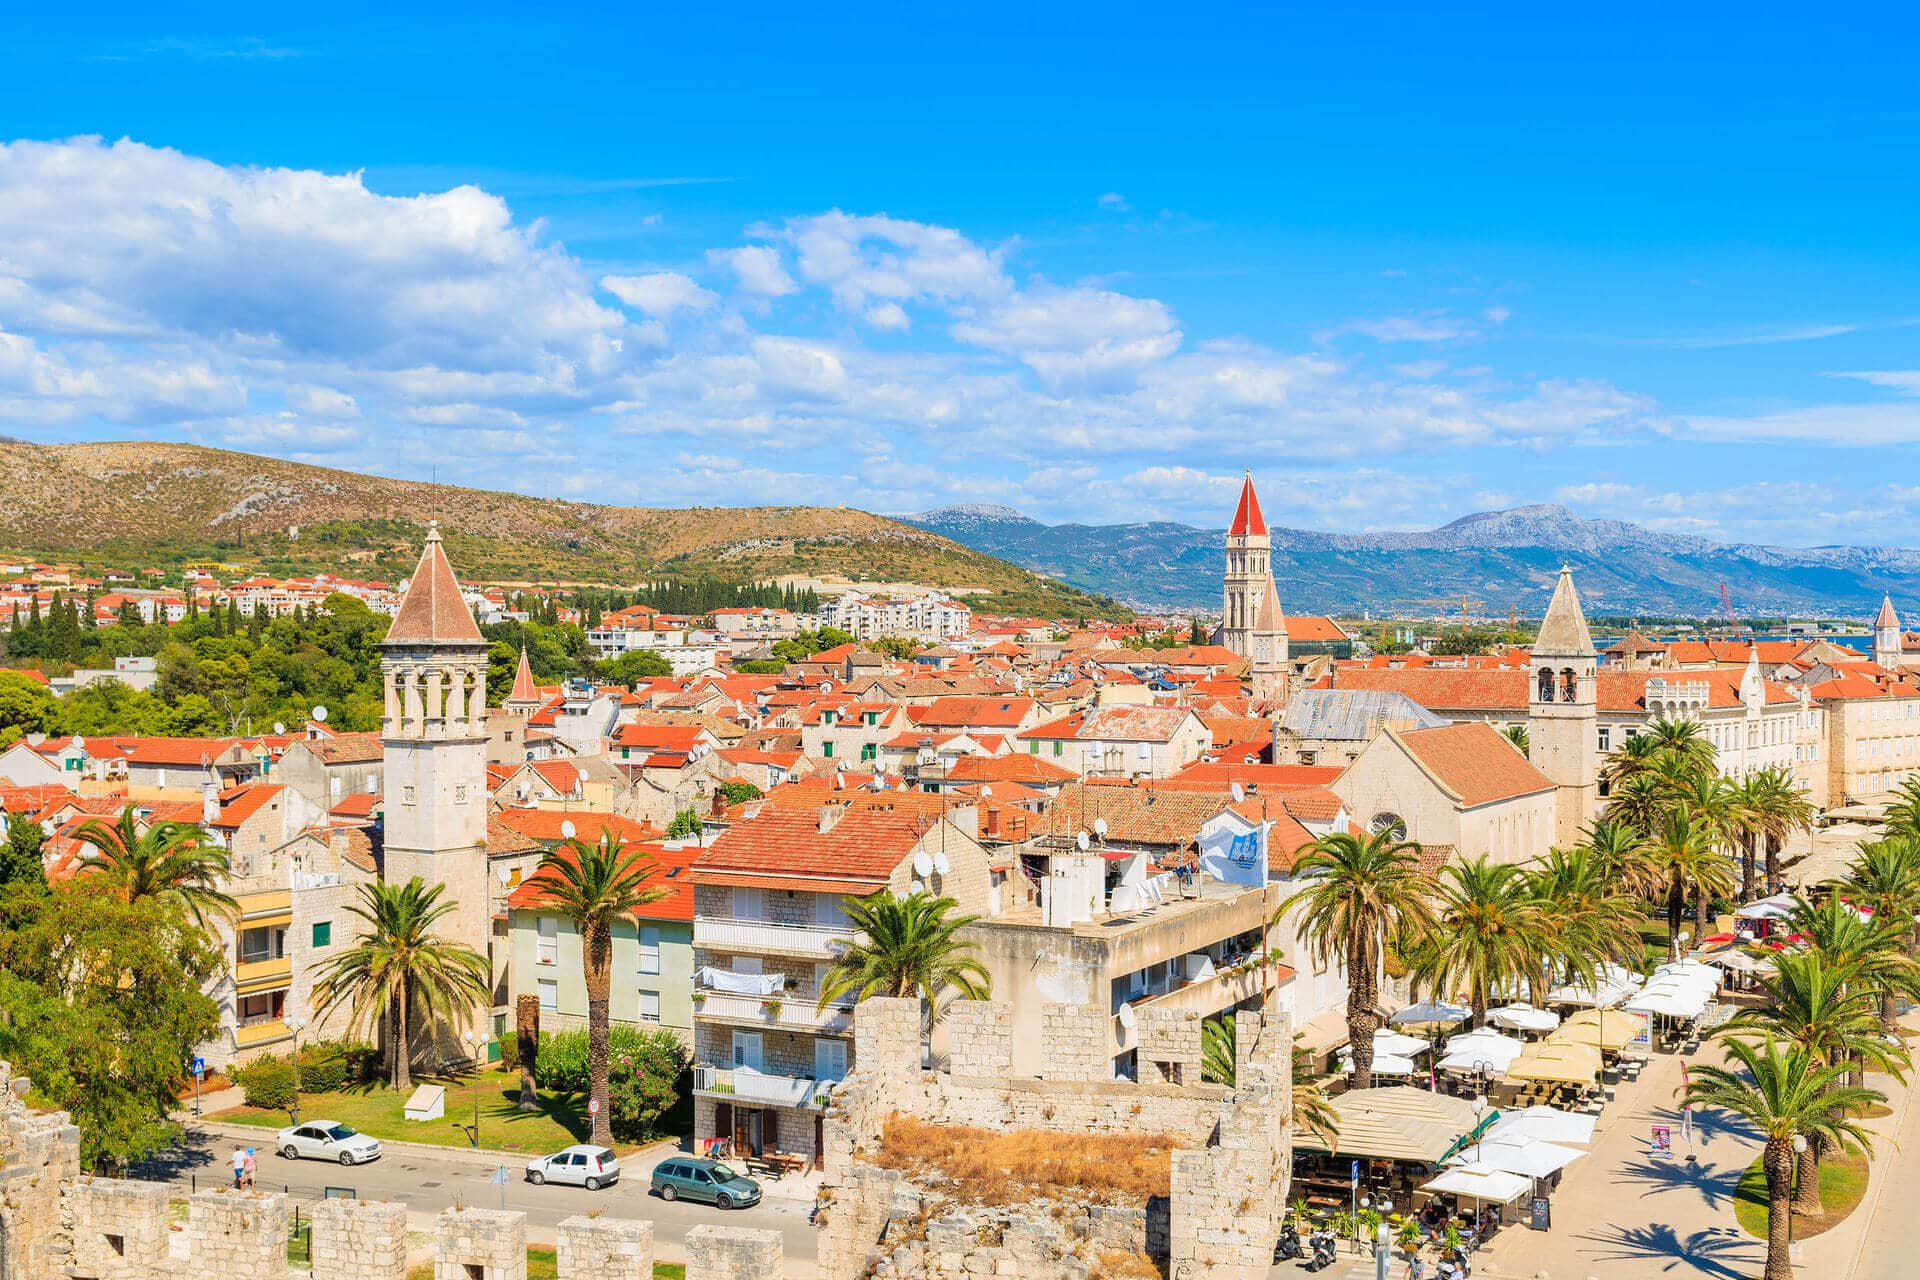 Trogir tours from Korcula